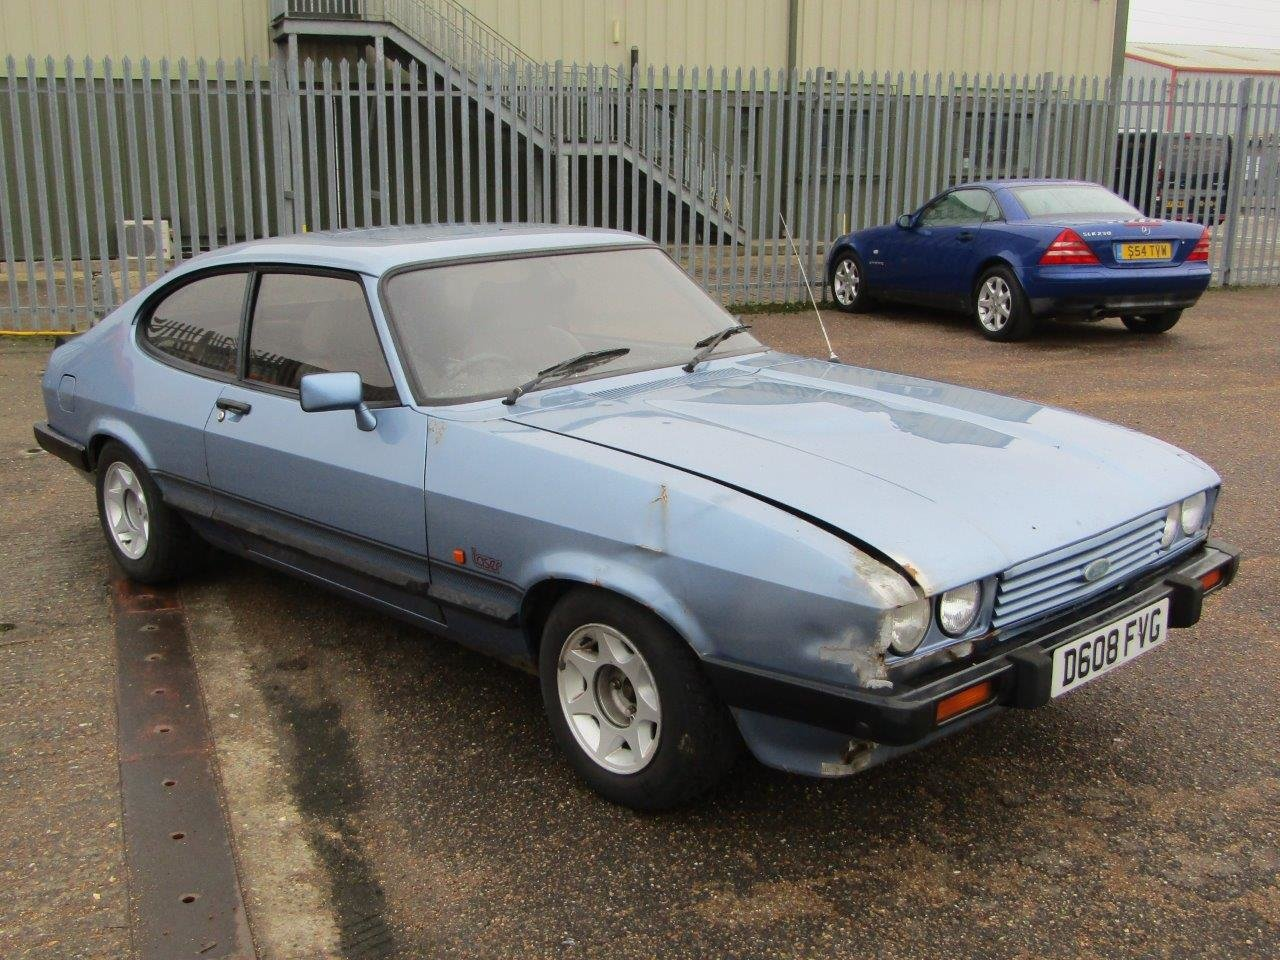 1986 Ford Capri 1.6 Laser at ACA 27th and 28th February For Sale by Auction (picture 1 of 11)